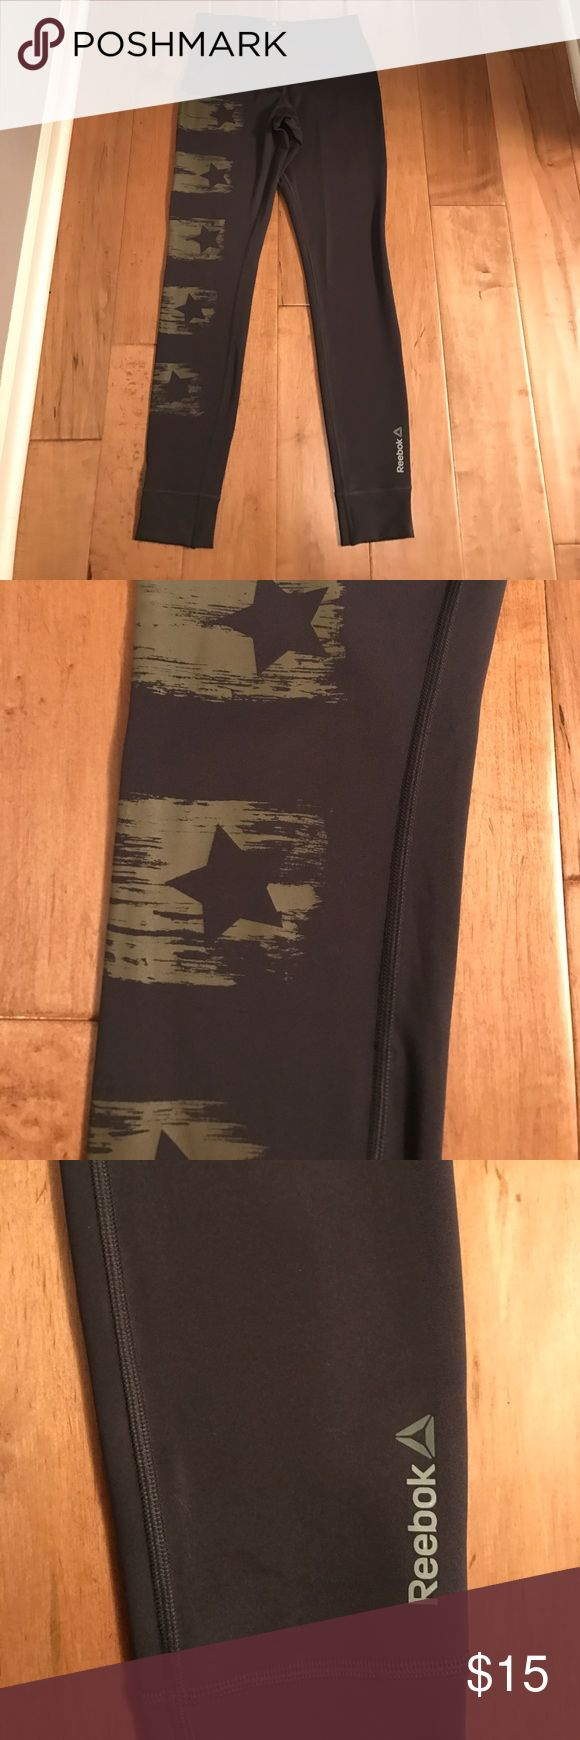 Reebok Star Leggings Military star print in army green on charcoal leggings by Reebok. Worn once! Size XSmall but fit like a Small. Reebok Pants Leggings